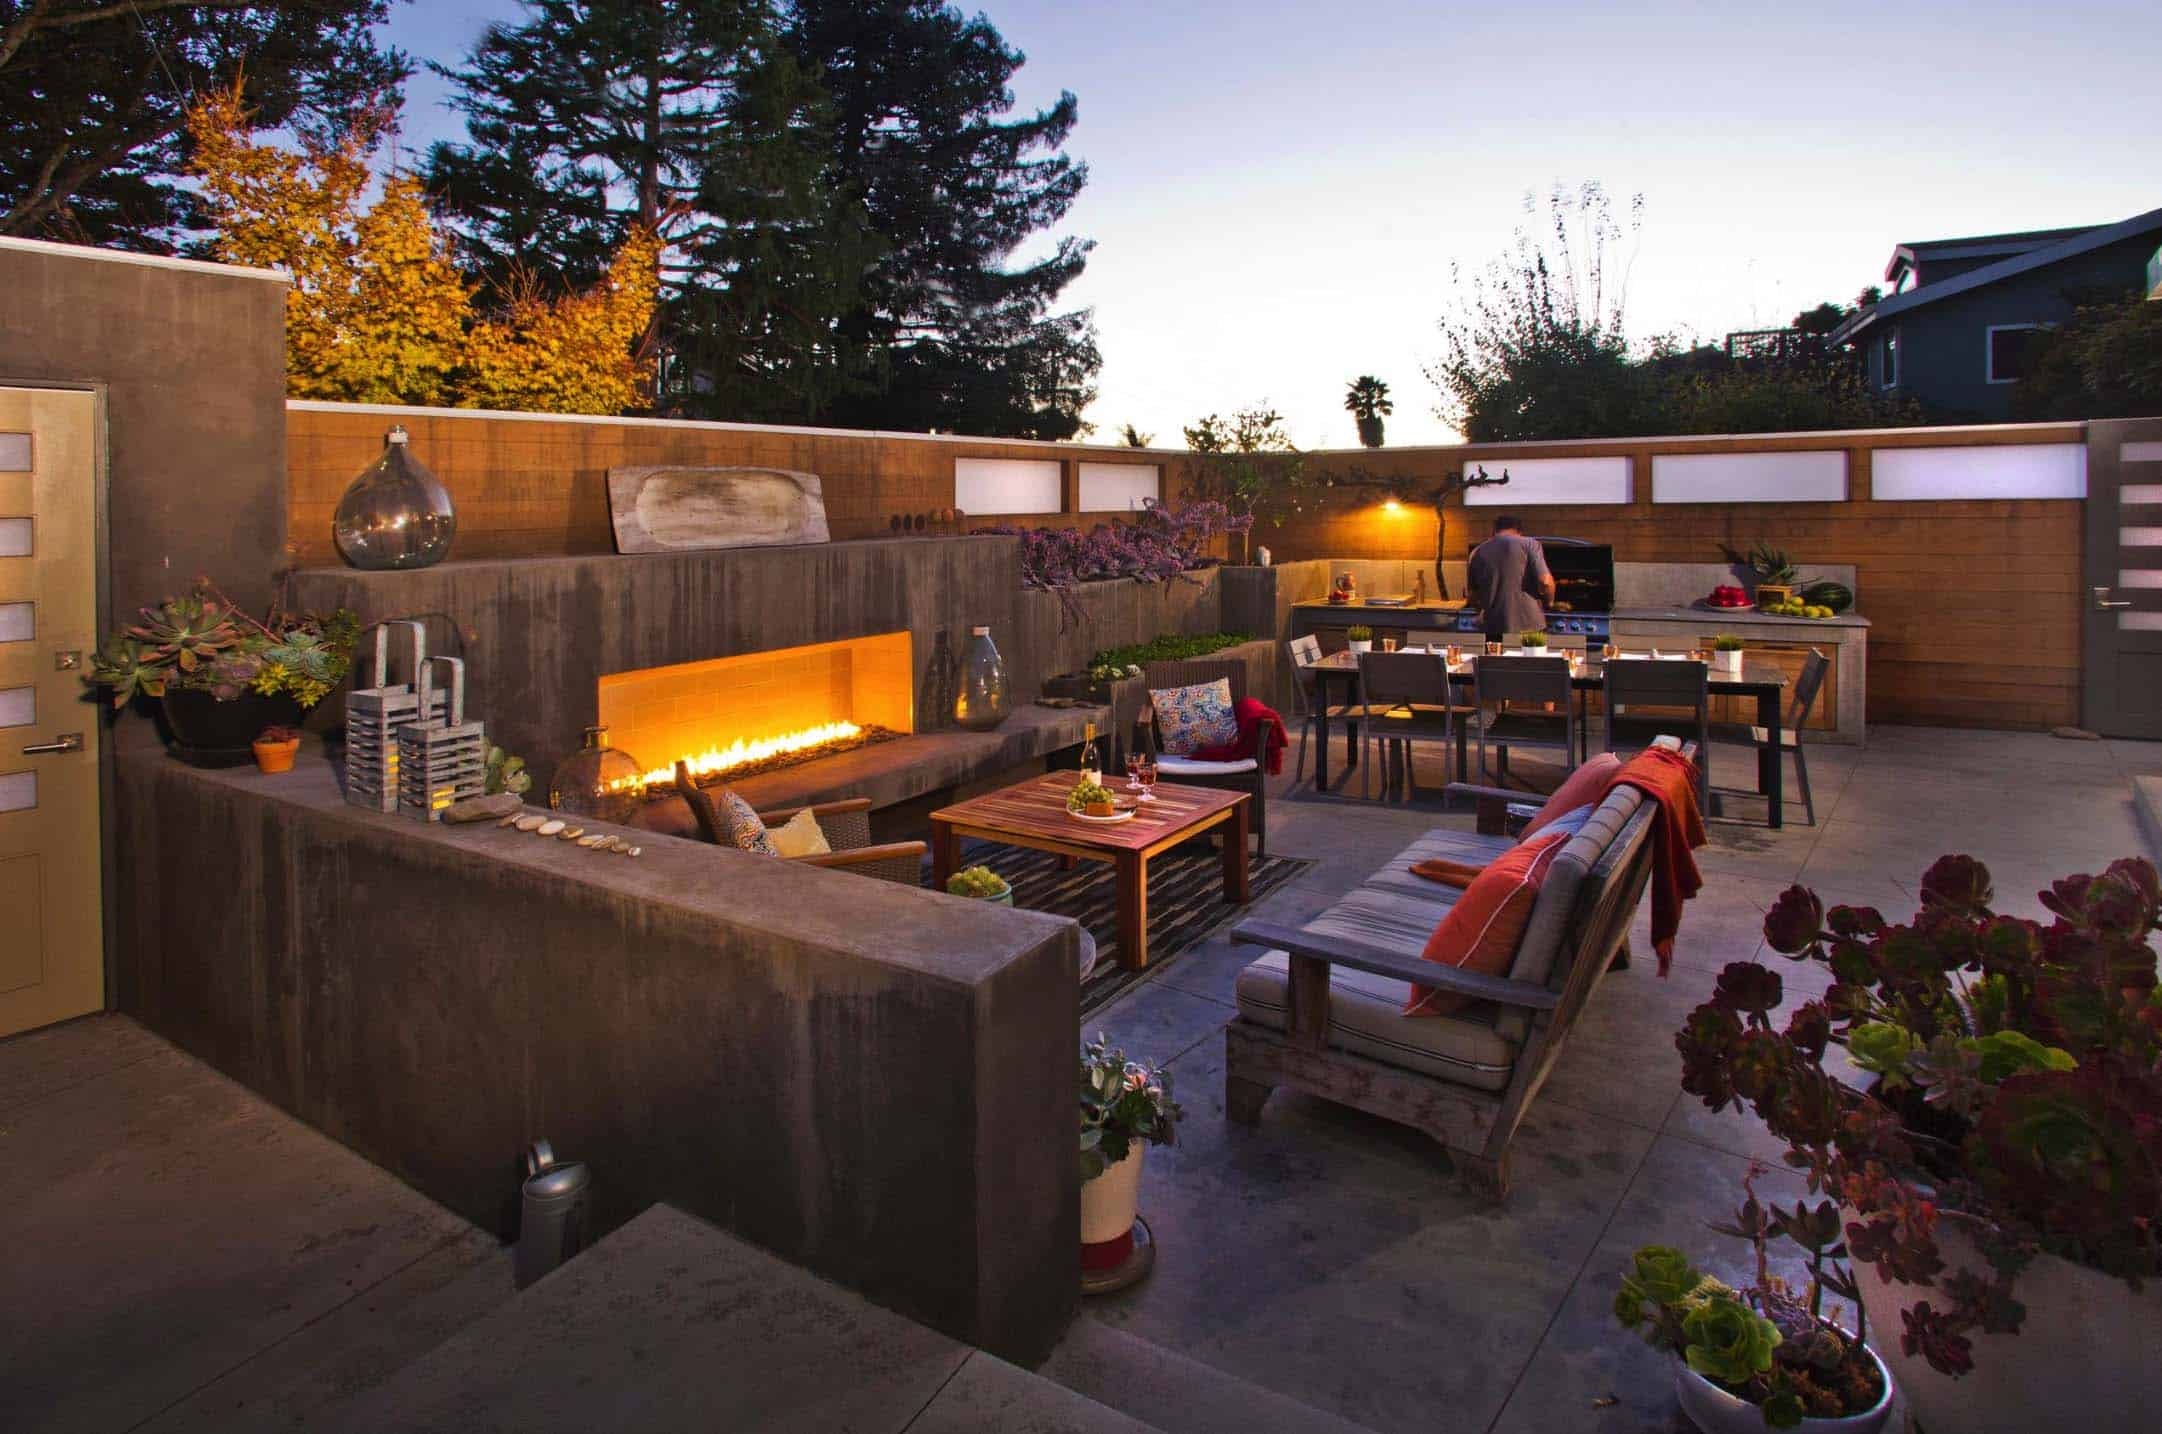 35 Brilliant and inspiring patio ideas for outdoor living ... on Small Backyard Entertainment Area Ideas id=42066